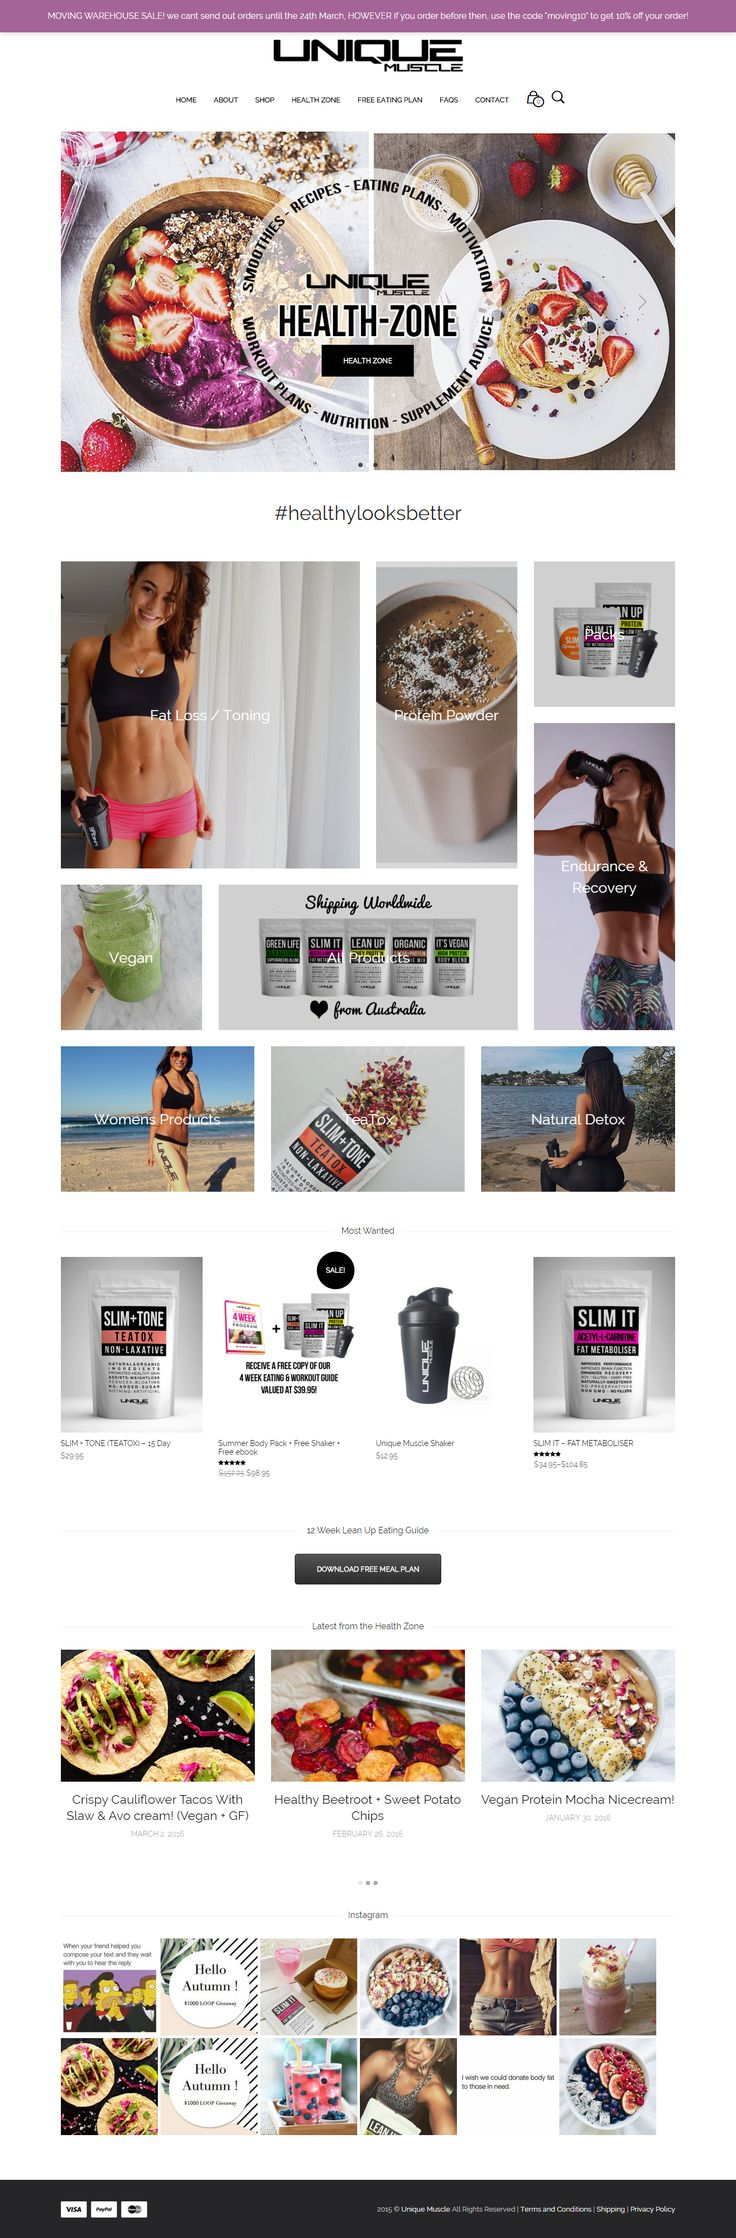 http://uniquemuscle.com.au/, built with Mr Tailor eCommerce theme. Learn more about this awesome theme here: http://themeforest.net/item/mr-tailor-responsive-woocommerce-theme/7292110?&utm_source=pinterest.com&utm_medium=social&utm_content=unique-muscle&utm_campaign=showcase #wordpress #webdesign #web #websites #design #ecommerce